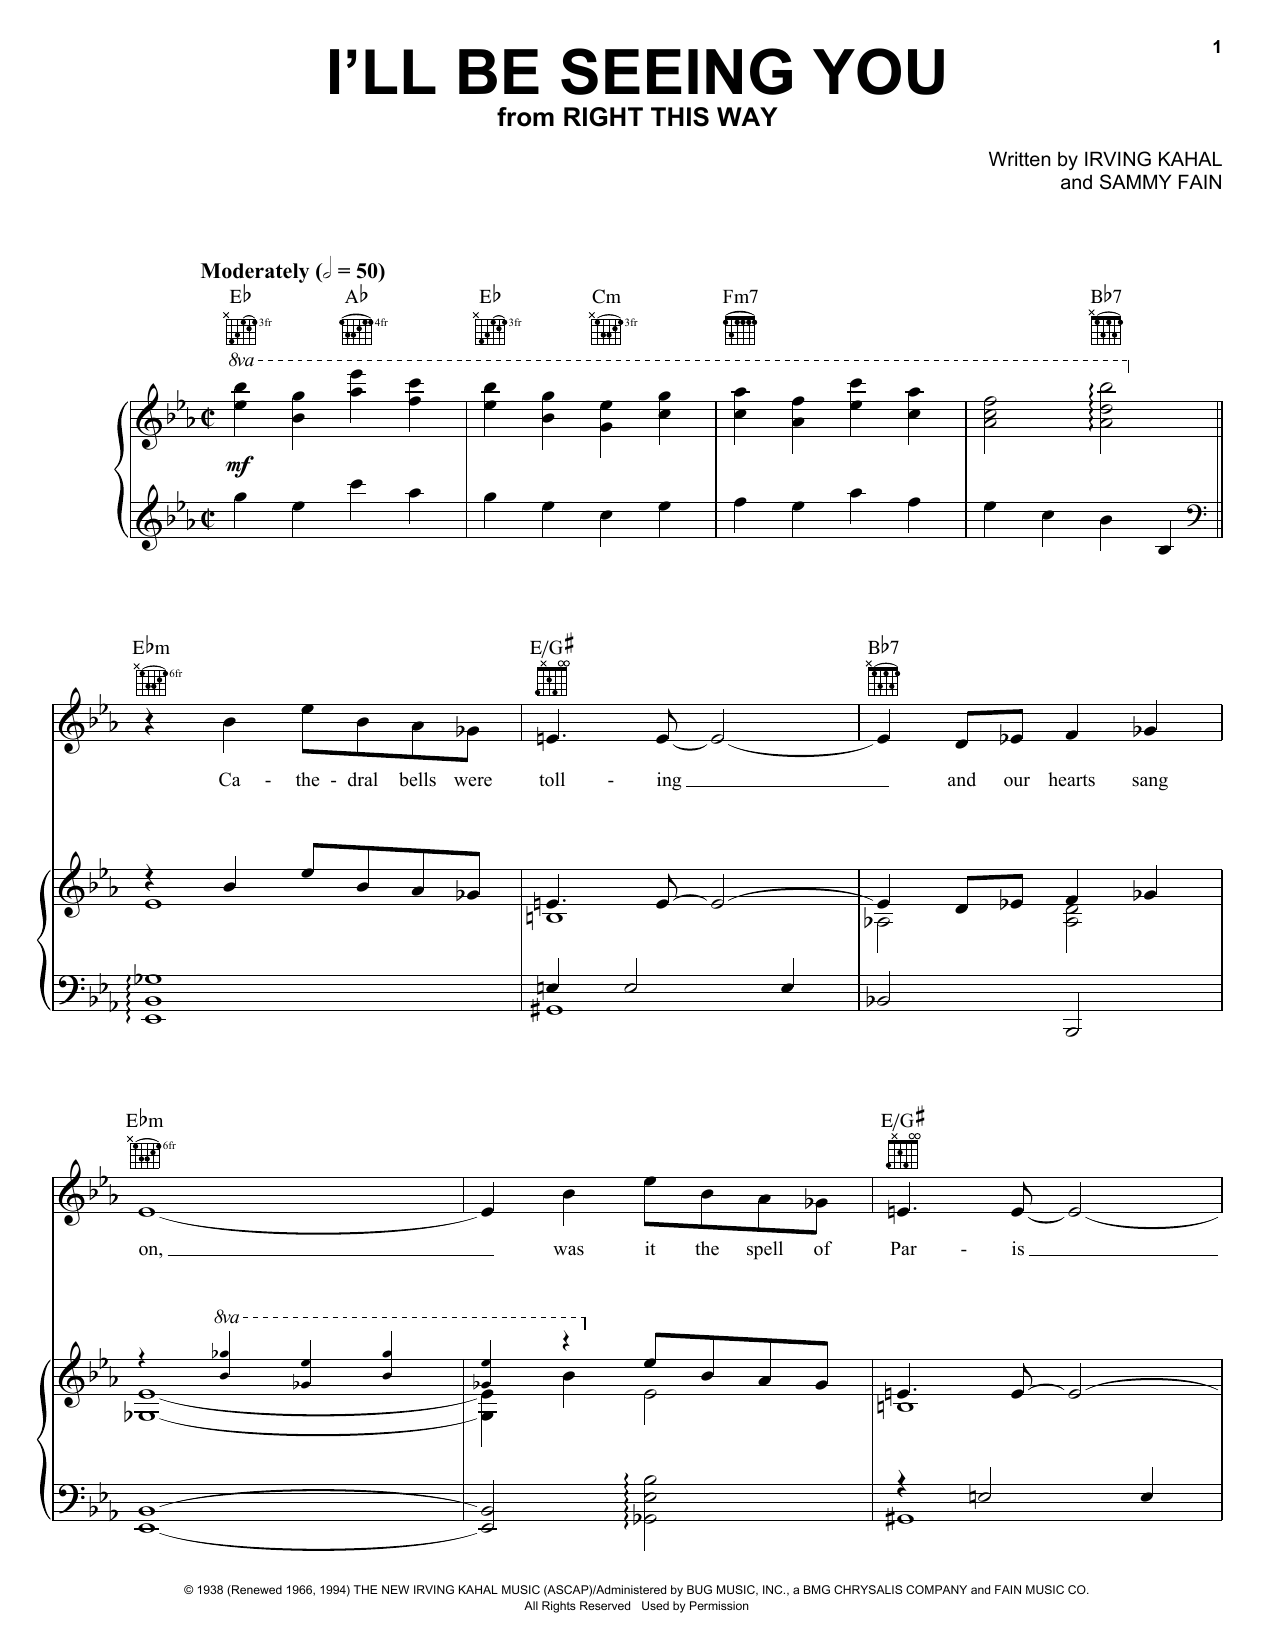 Frank Sinatra Ill Be Seeing You Sheet Music Notes Chords